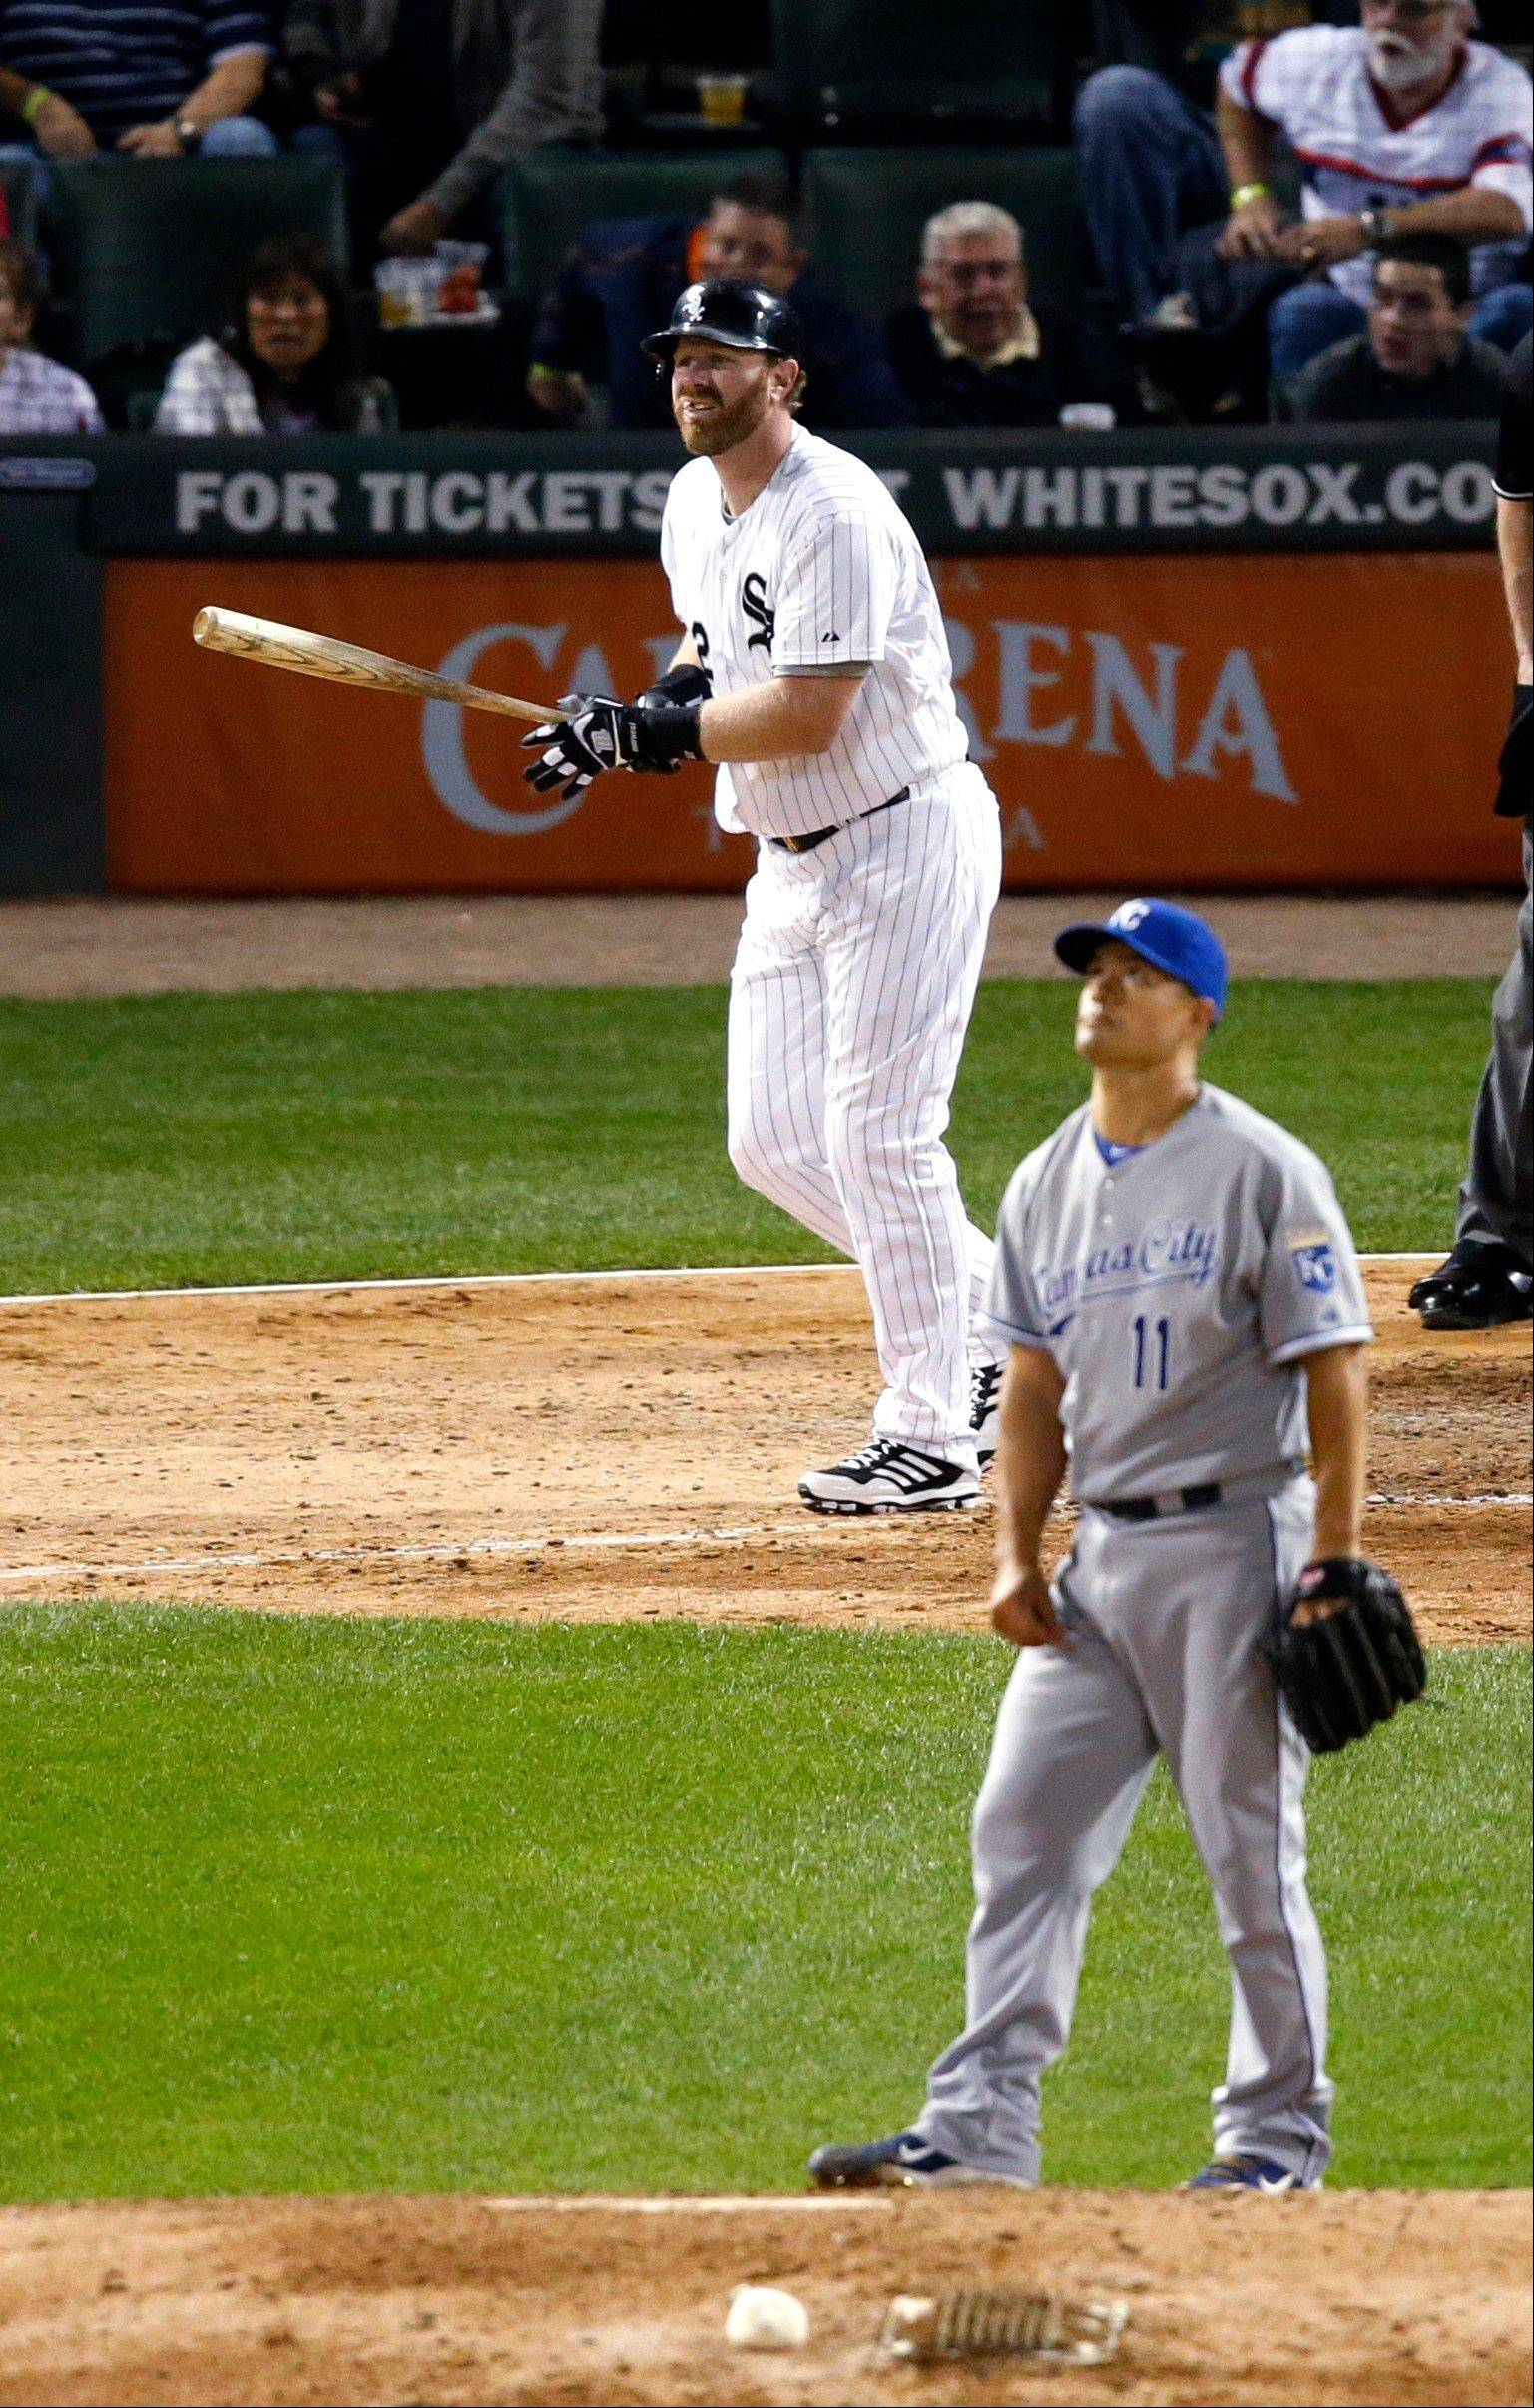 The White Sox�s Adam Dunn watches his home run with Kansas City Royals starting pitcher Jeremy Guthrie during Thursday night�s game at U.S. Cellular Field. The Sox lost 3-2.